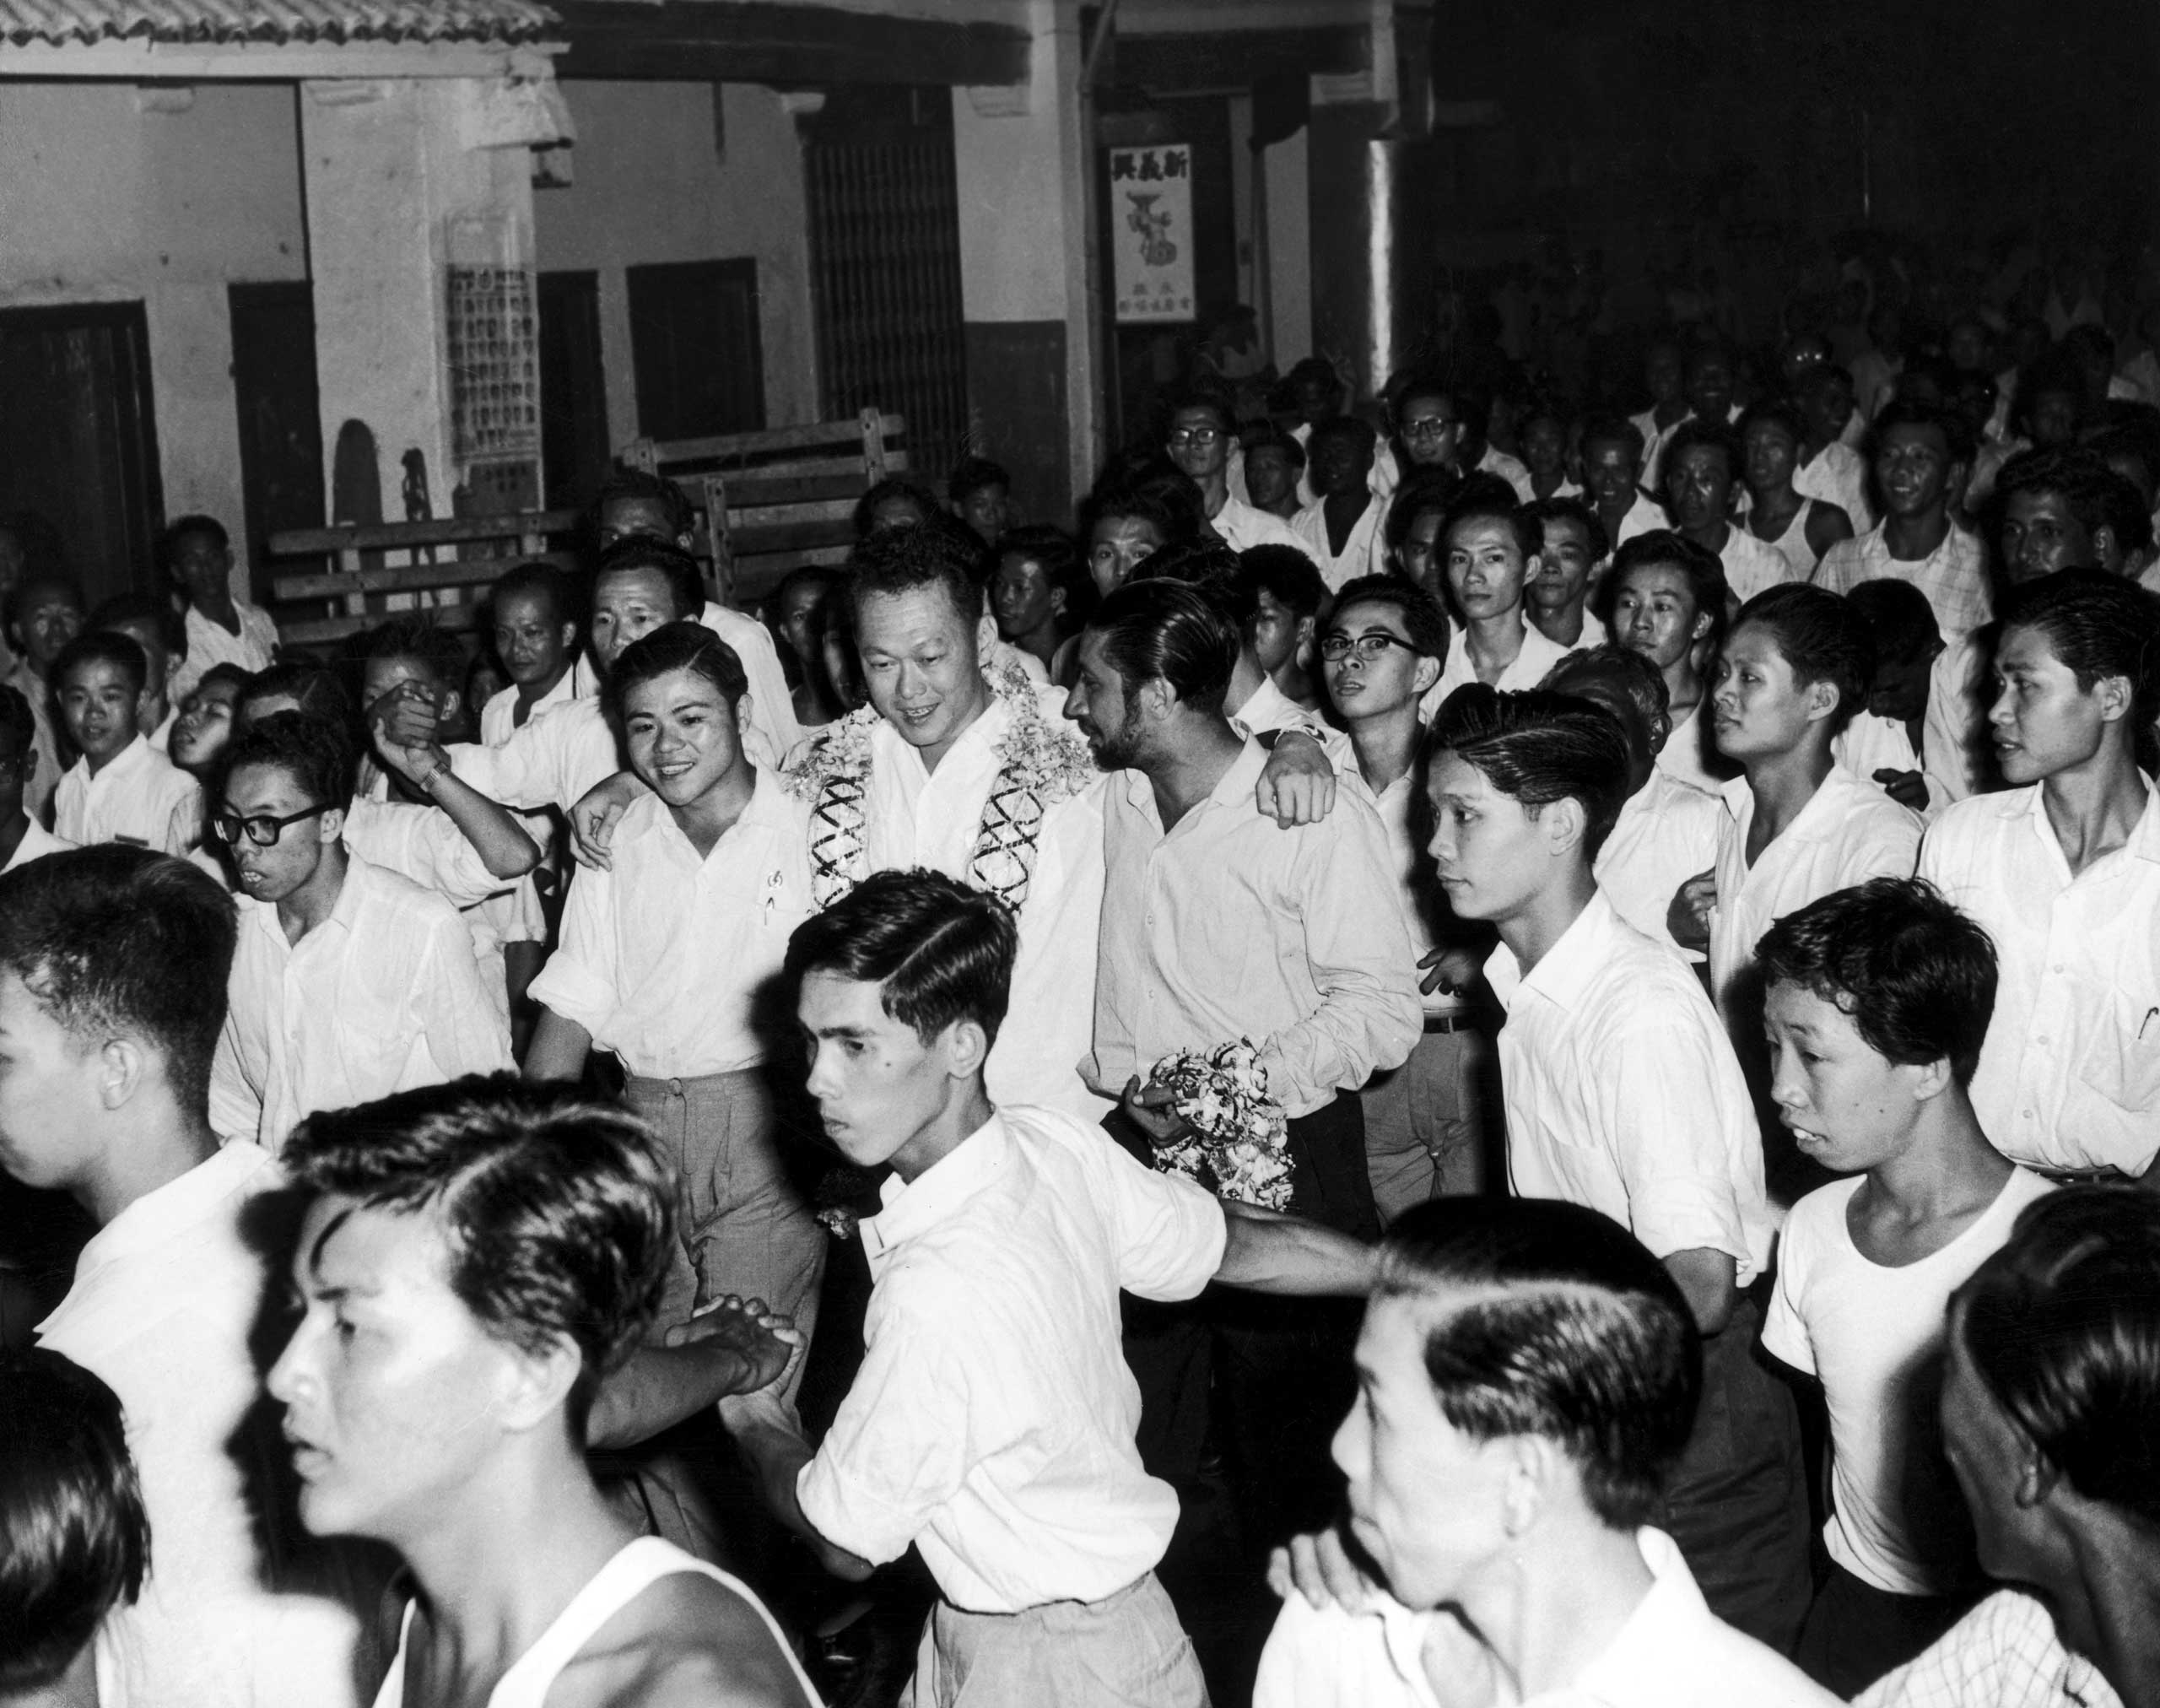 The General Secretary of People's Action Party of Singapore and the new Prime Minister Lee Kuan Yew congratulated by his supporters in 1959.